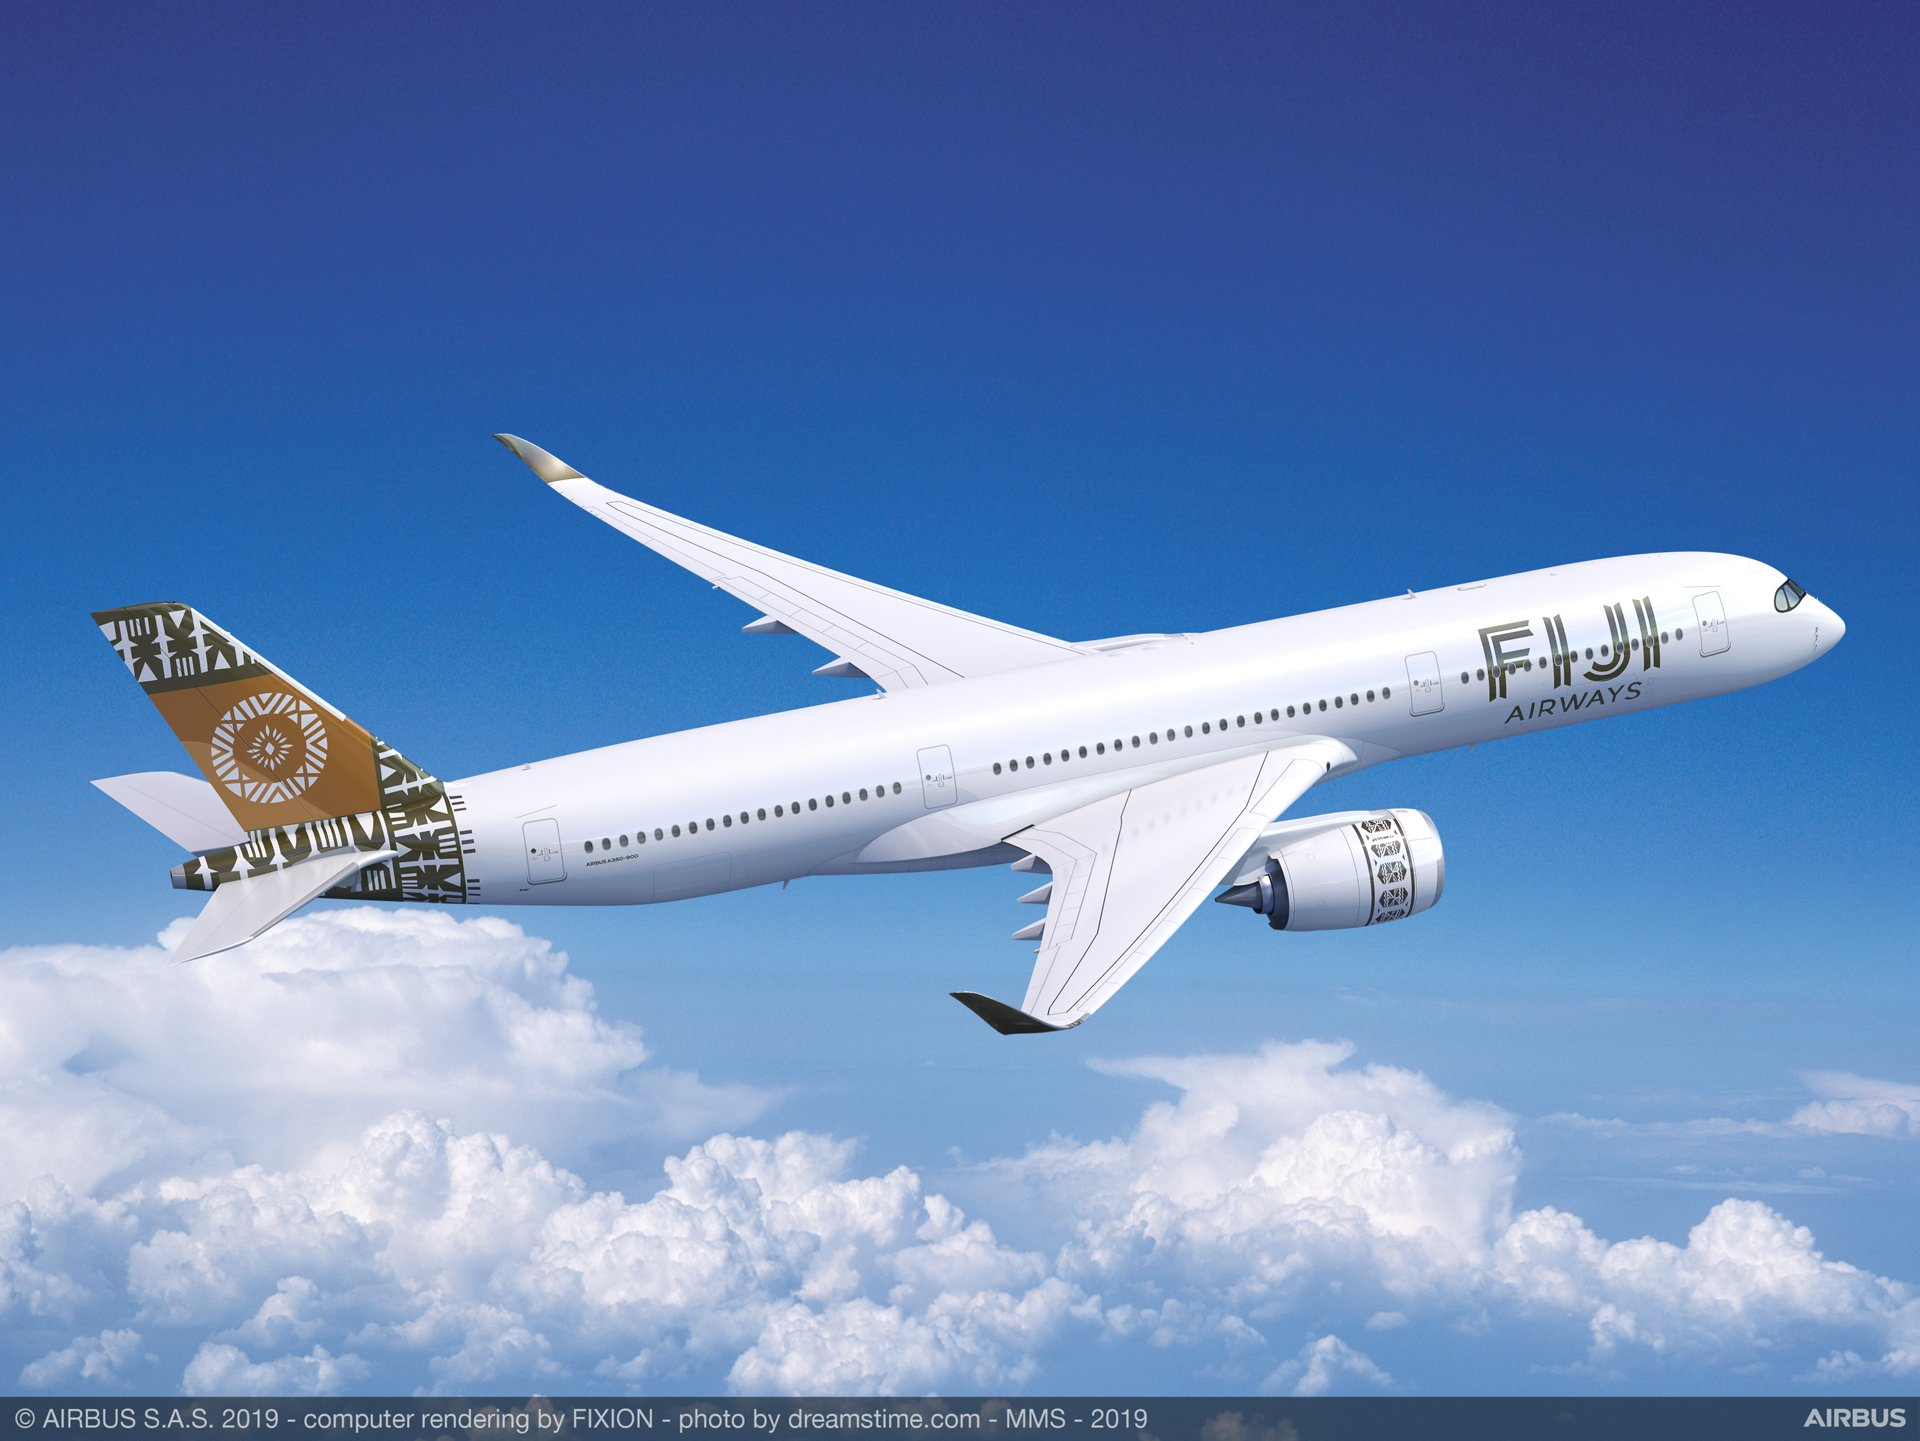 Fiji Airways' two A350-900s, leased from Dubai-based DAE Capital, will join the airline's fleet as part of the plan to expand its international network